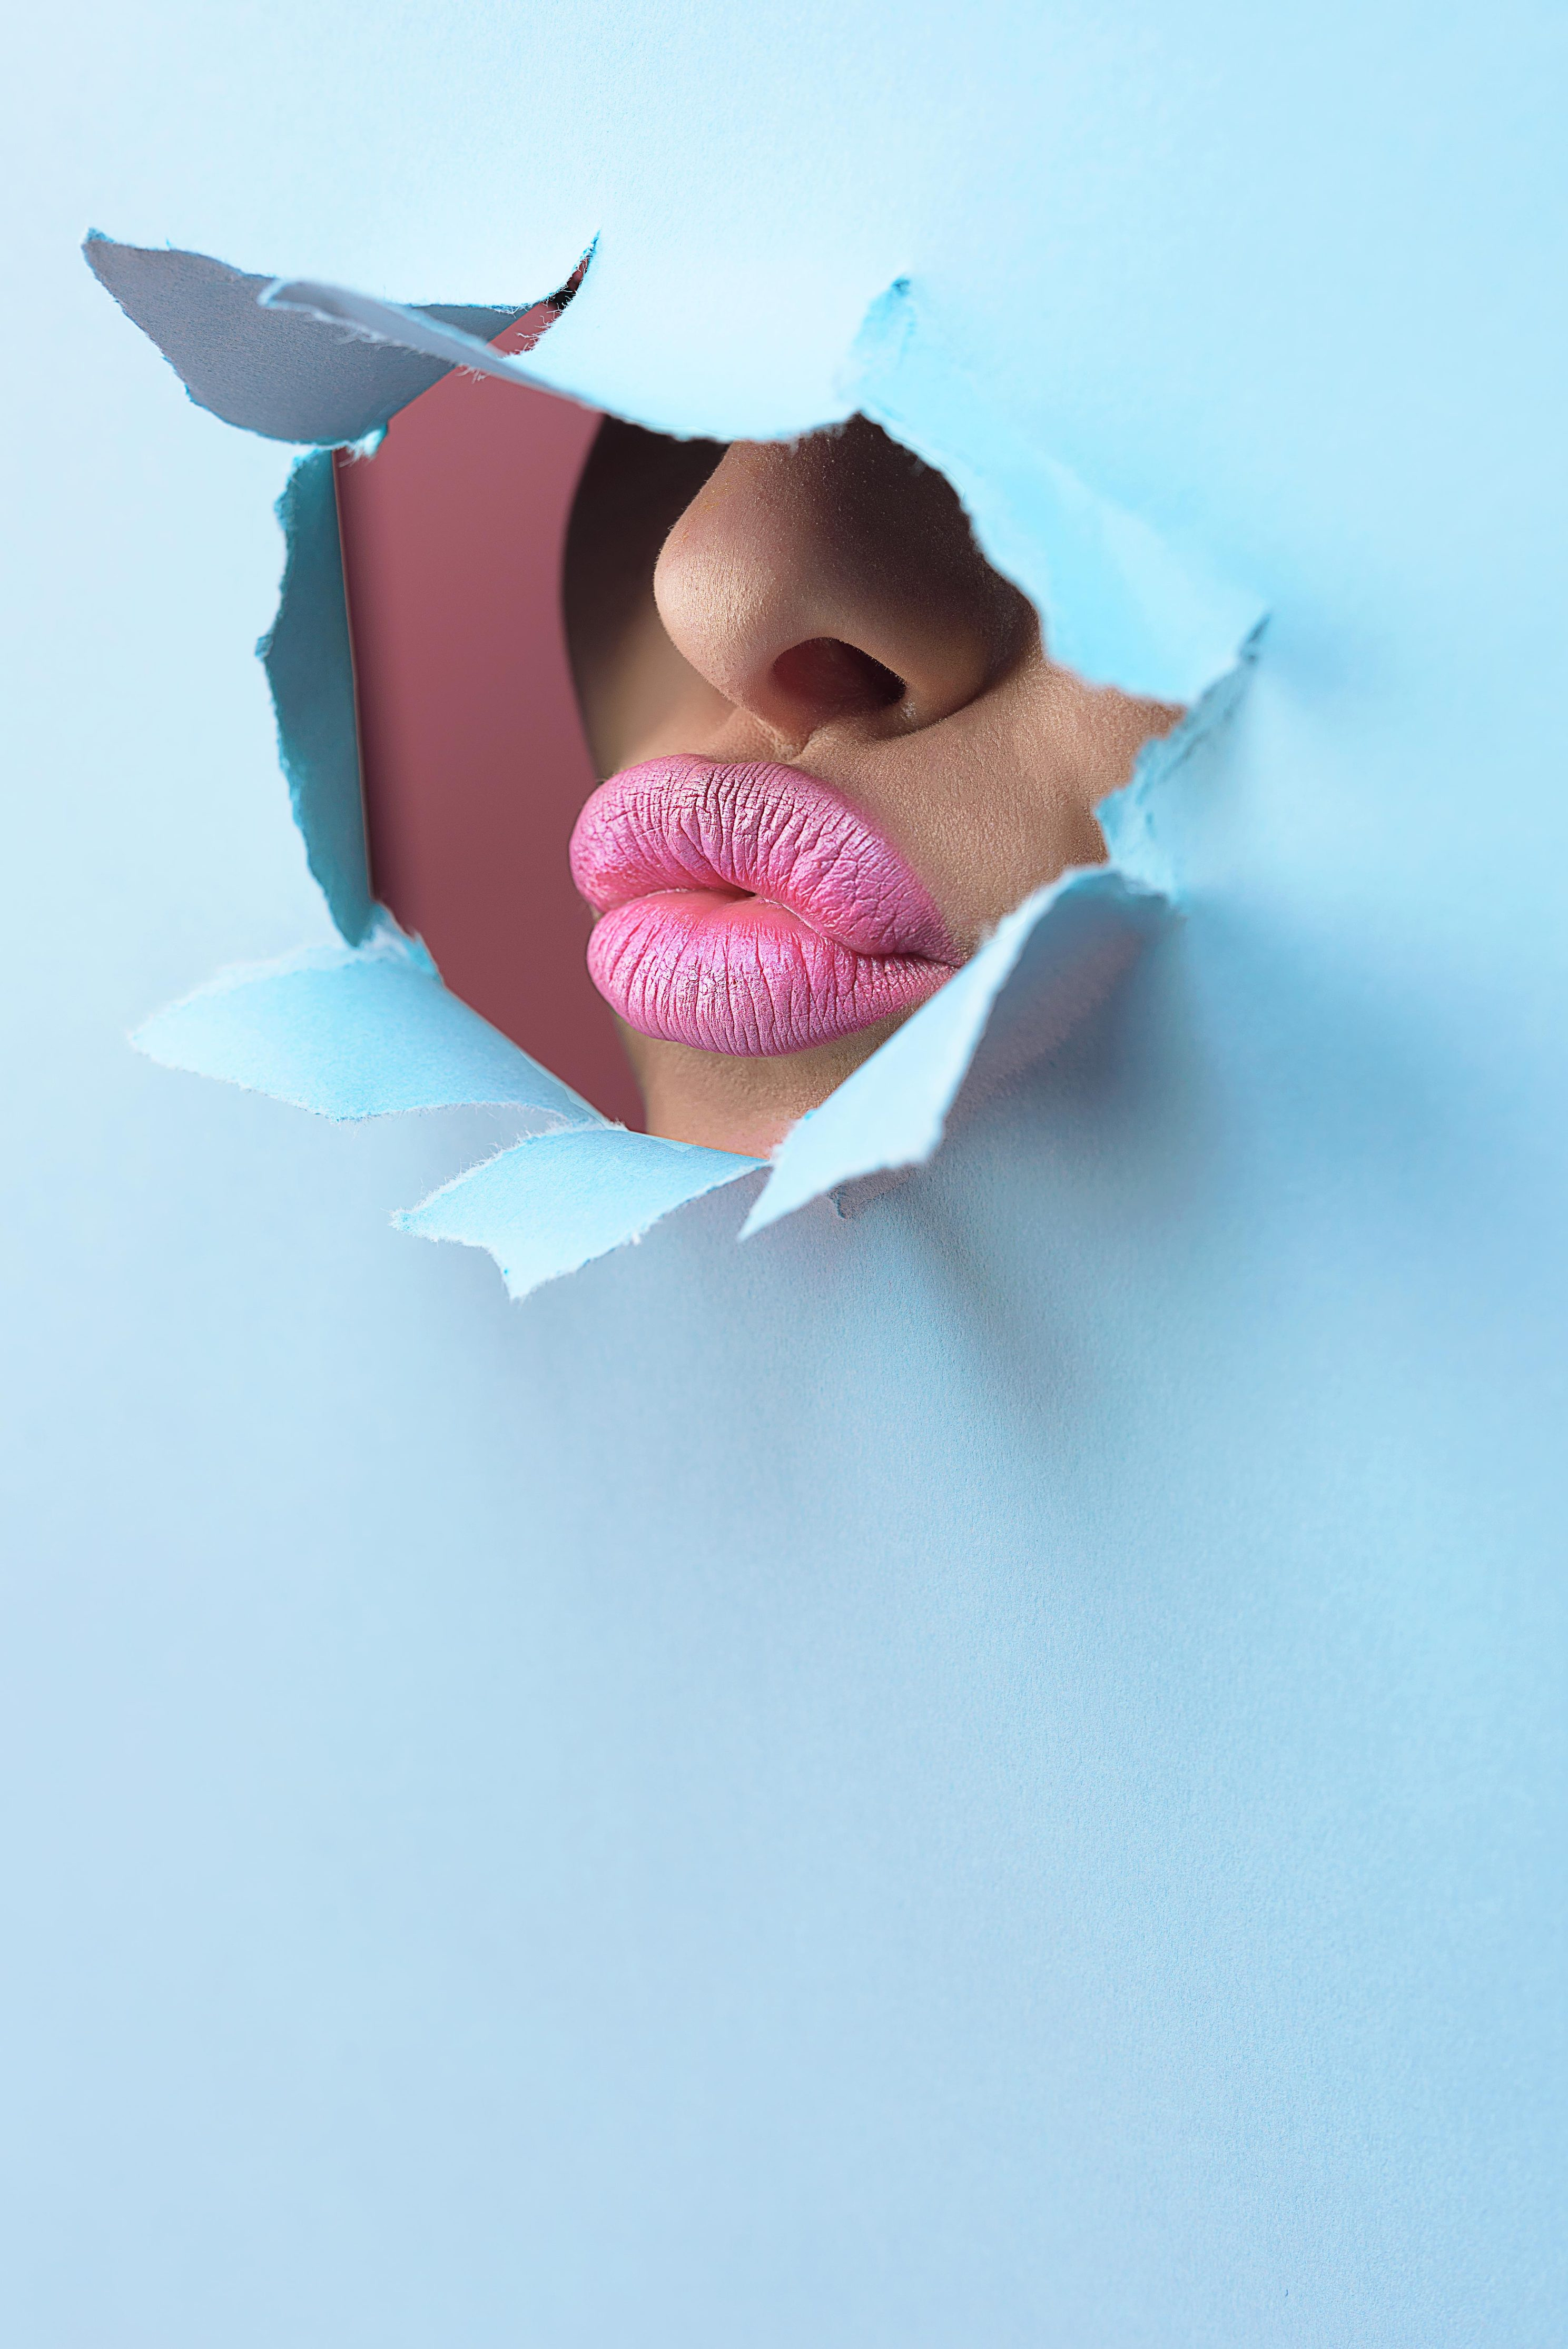 eco-beauty-makeup-trends-spring-pink-lips-bold-lip-bright-makeup